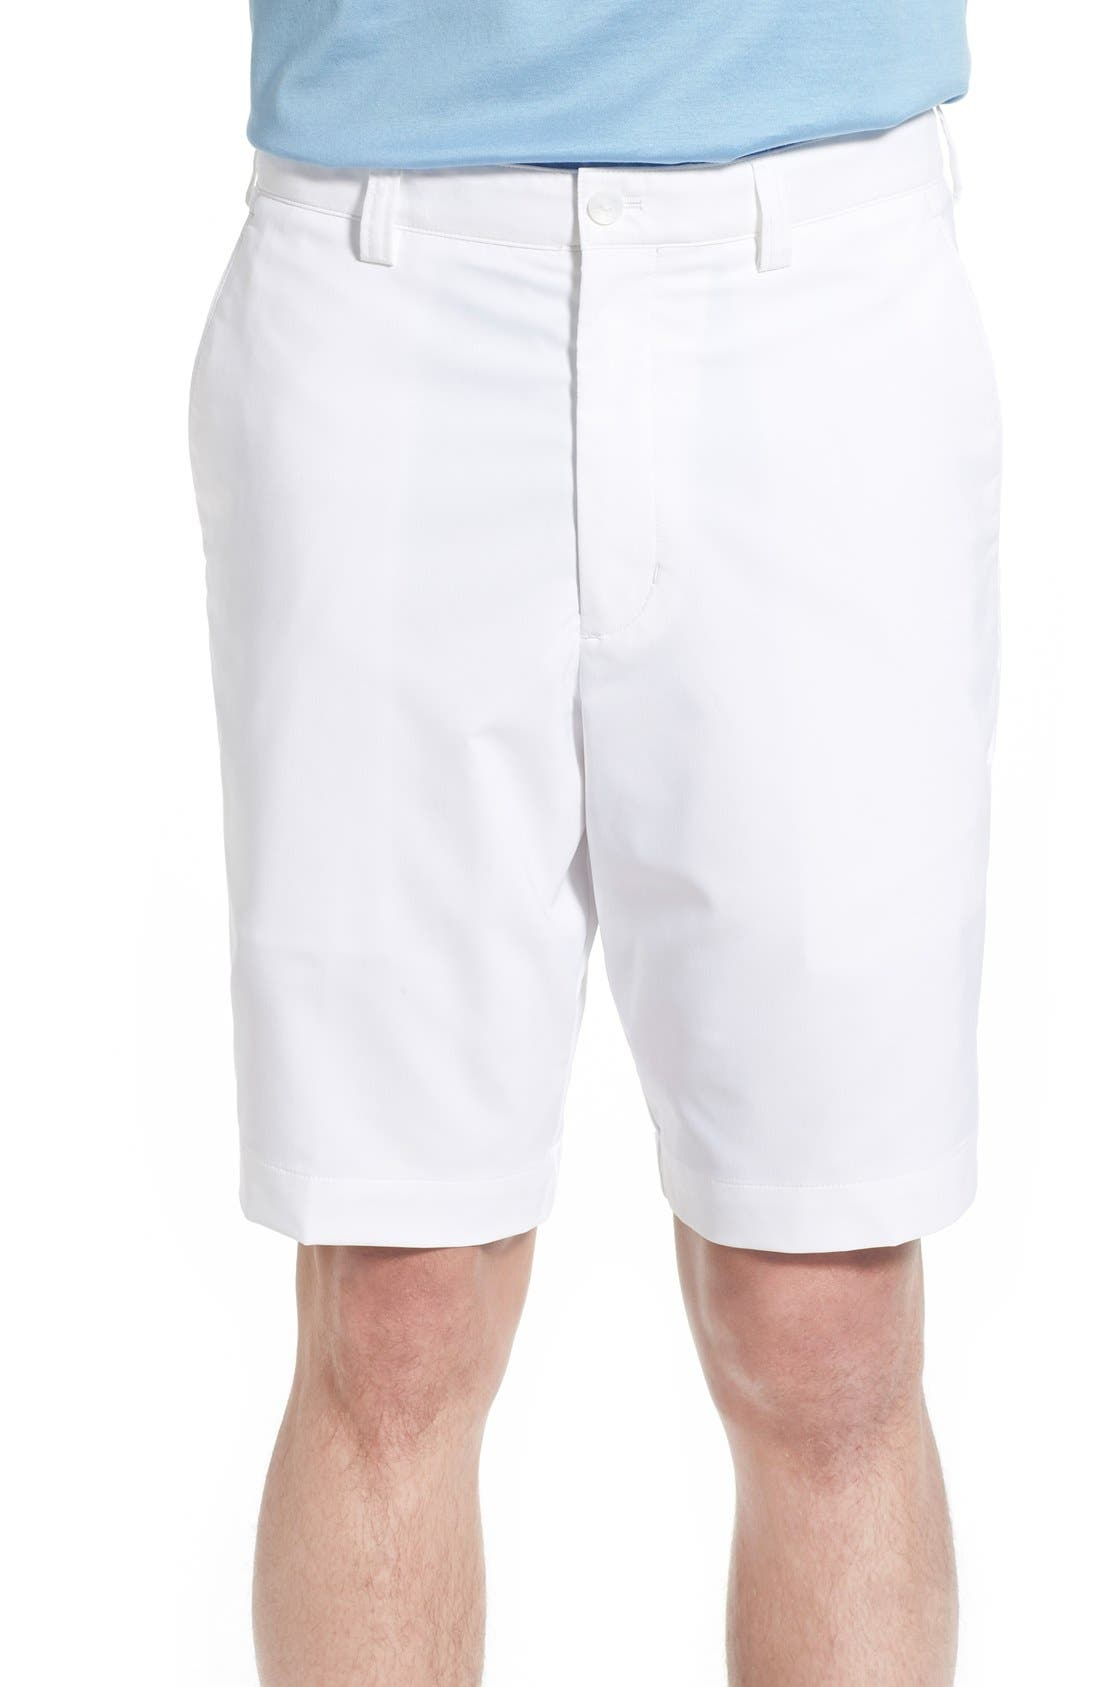 Main Image - Cutter & Buck DryTec Shorts